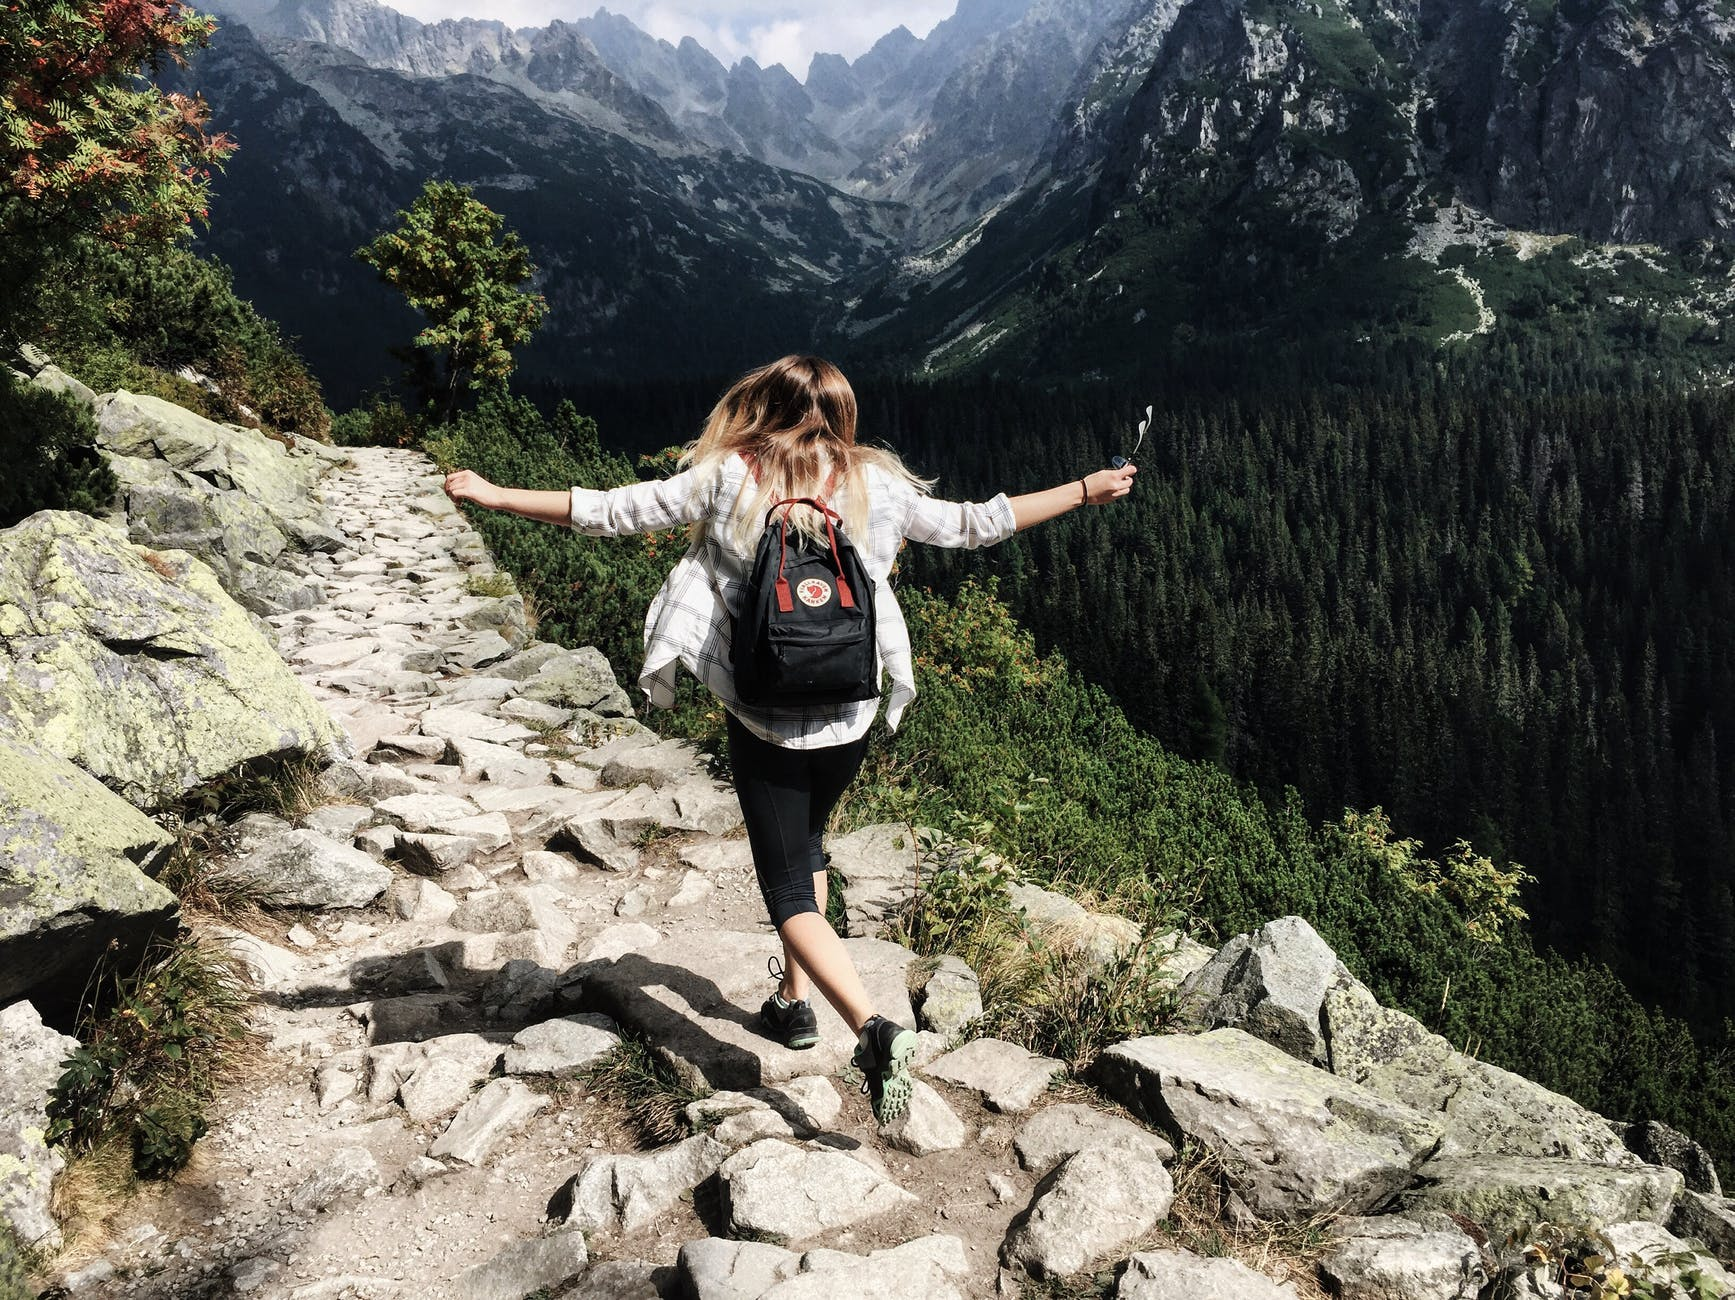 Hike a mountain and find the true source of your data